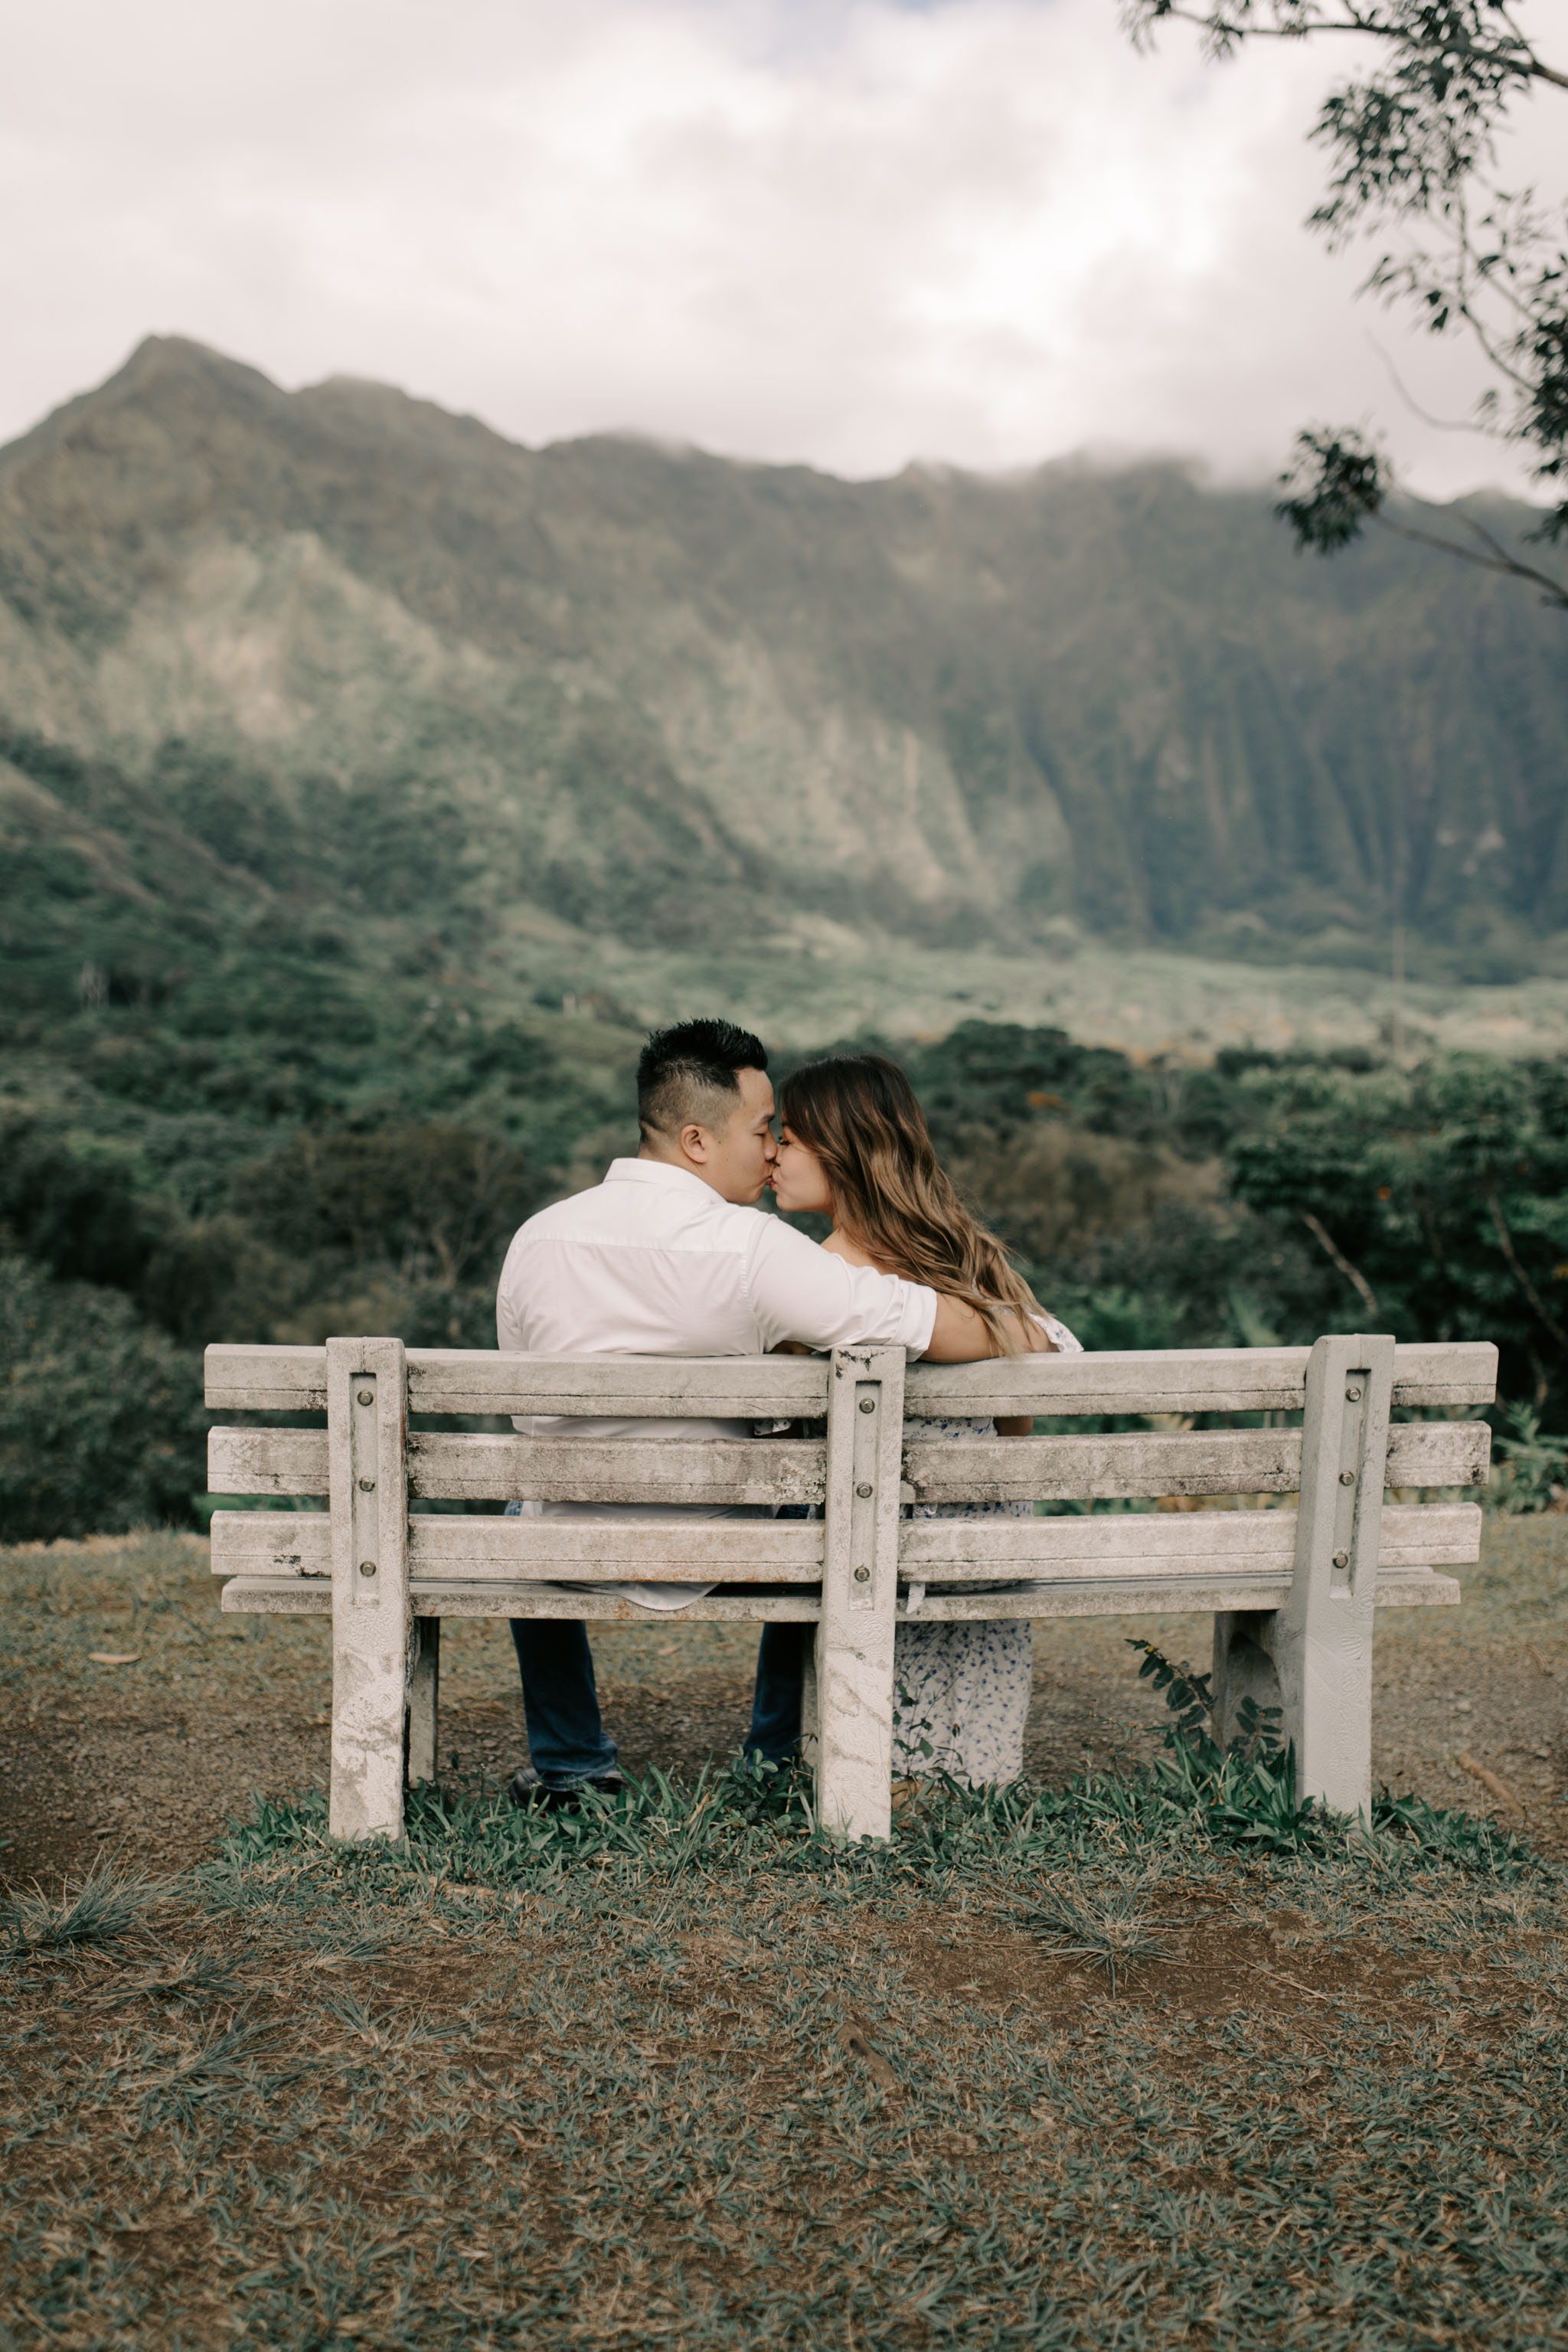 Gorgeous Hawaii Engagement Photos Overlooking the Koolau Mountains by Hawaii Wedding Photographer Desiree Leilani